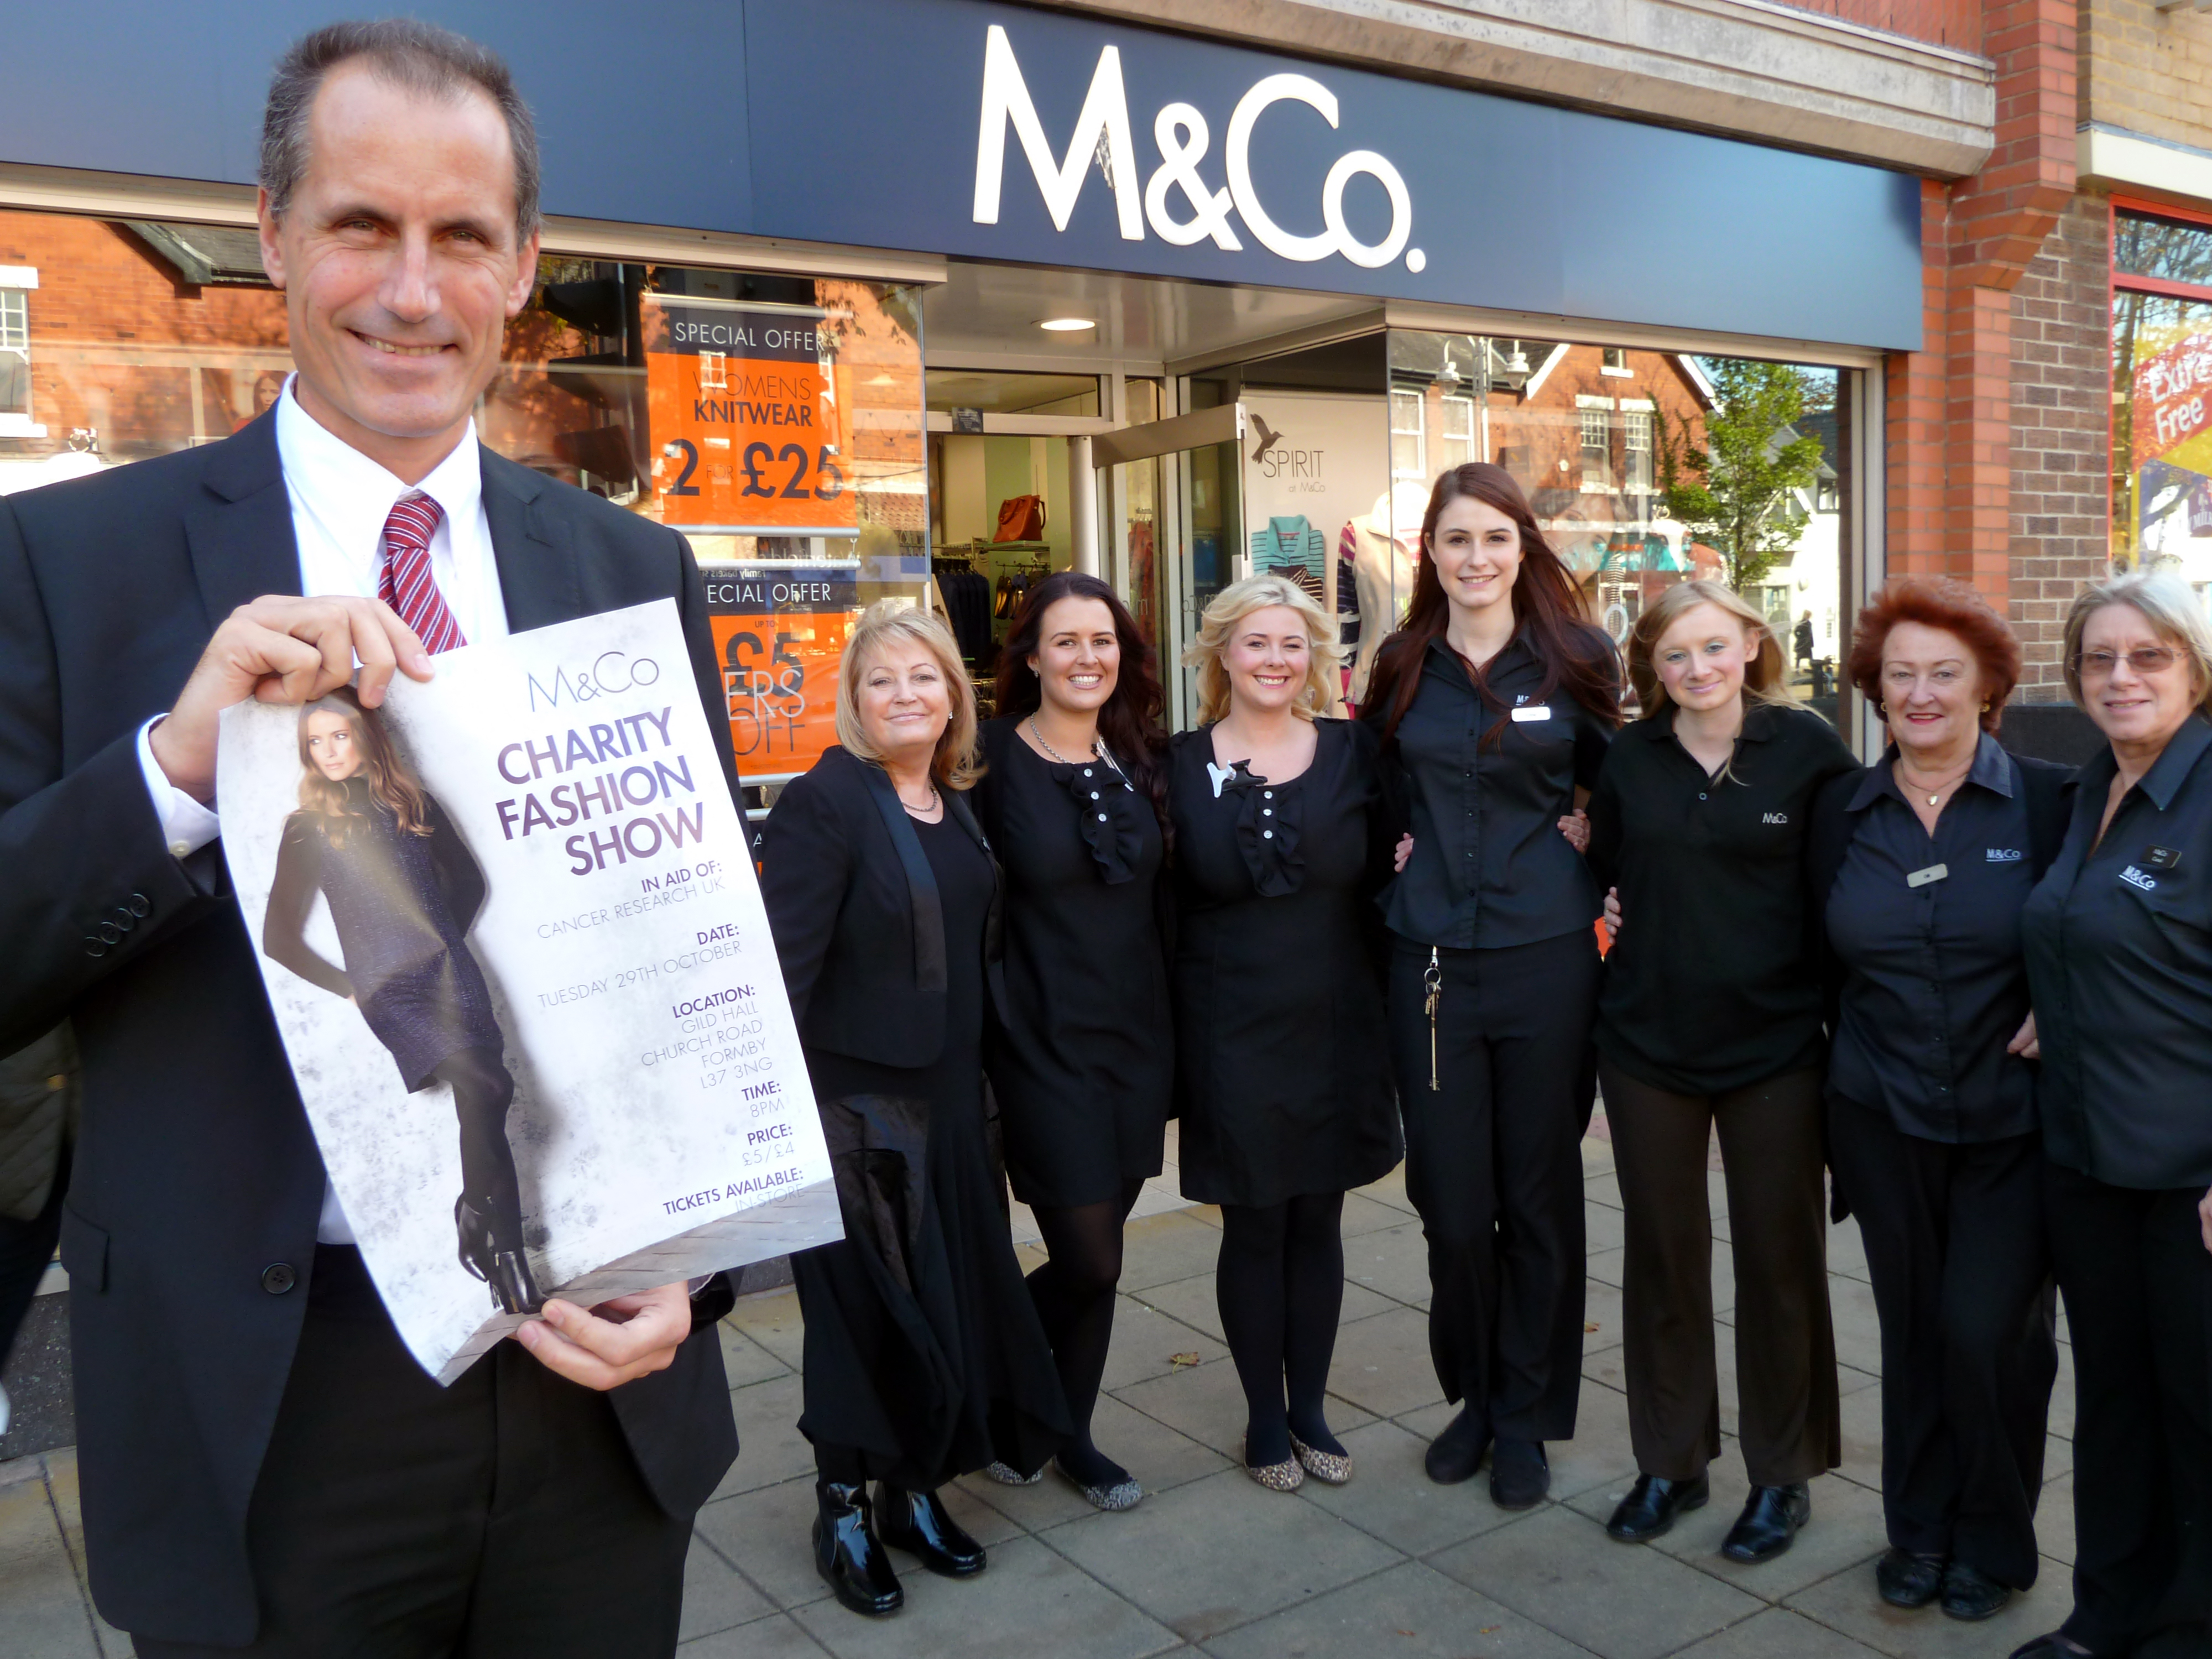 Sefton Central Labour MP Bill Esterson with fashion show organiser Sheila Leathley, Unique Salon's Amy MacDonald and Zoe Martin, M&Co store manager Emma Cook, Gill Moore, Carol Beddows and Chrisie Lee.